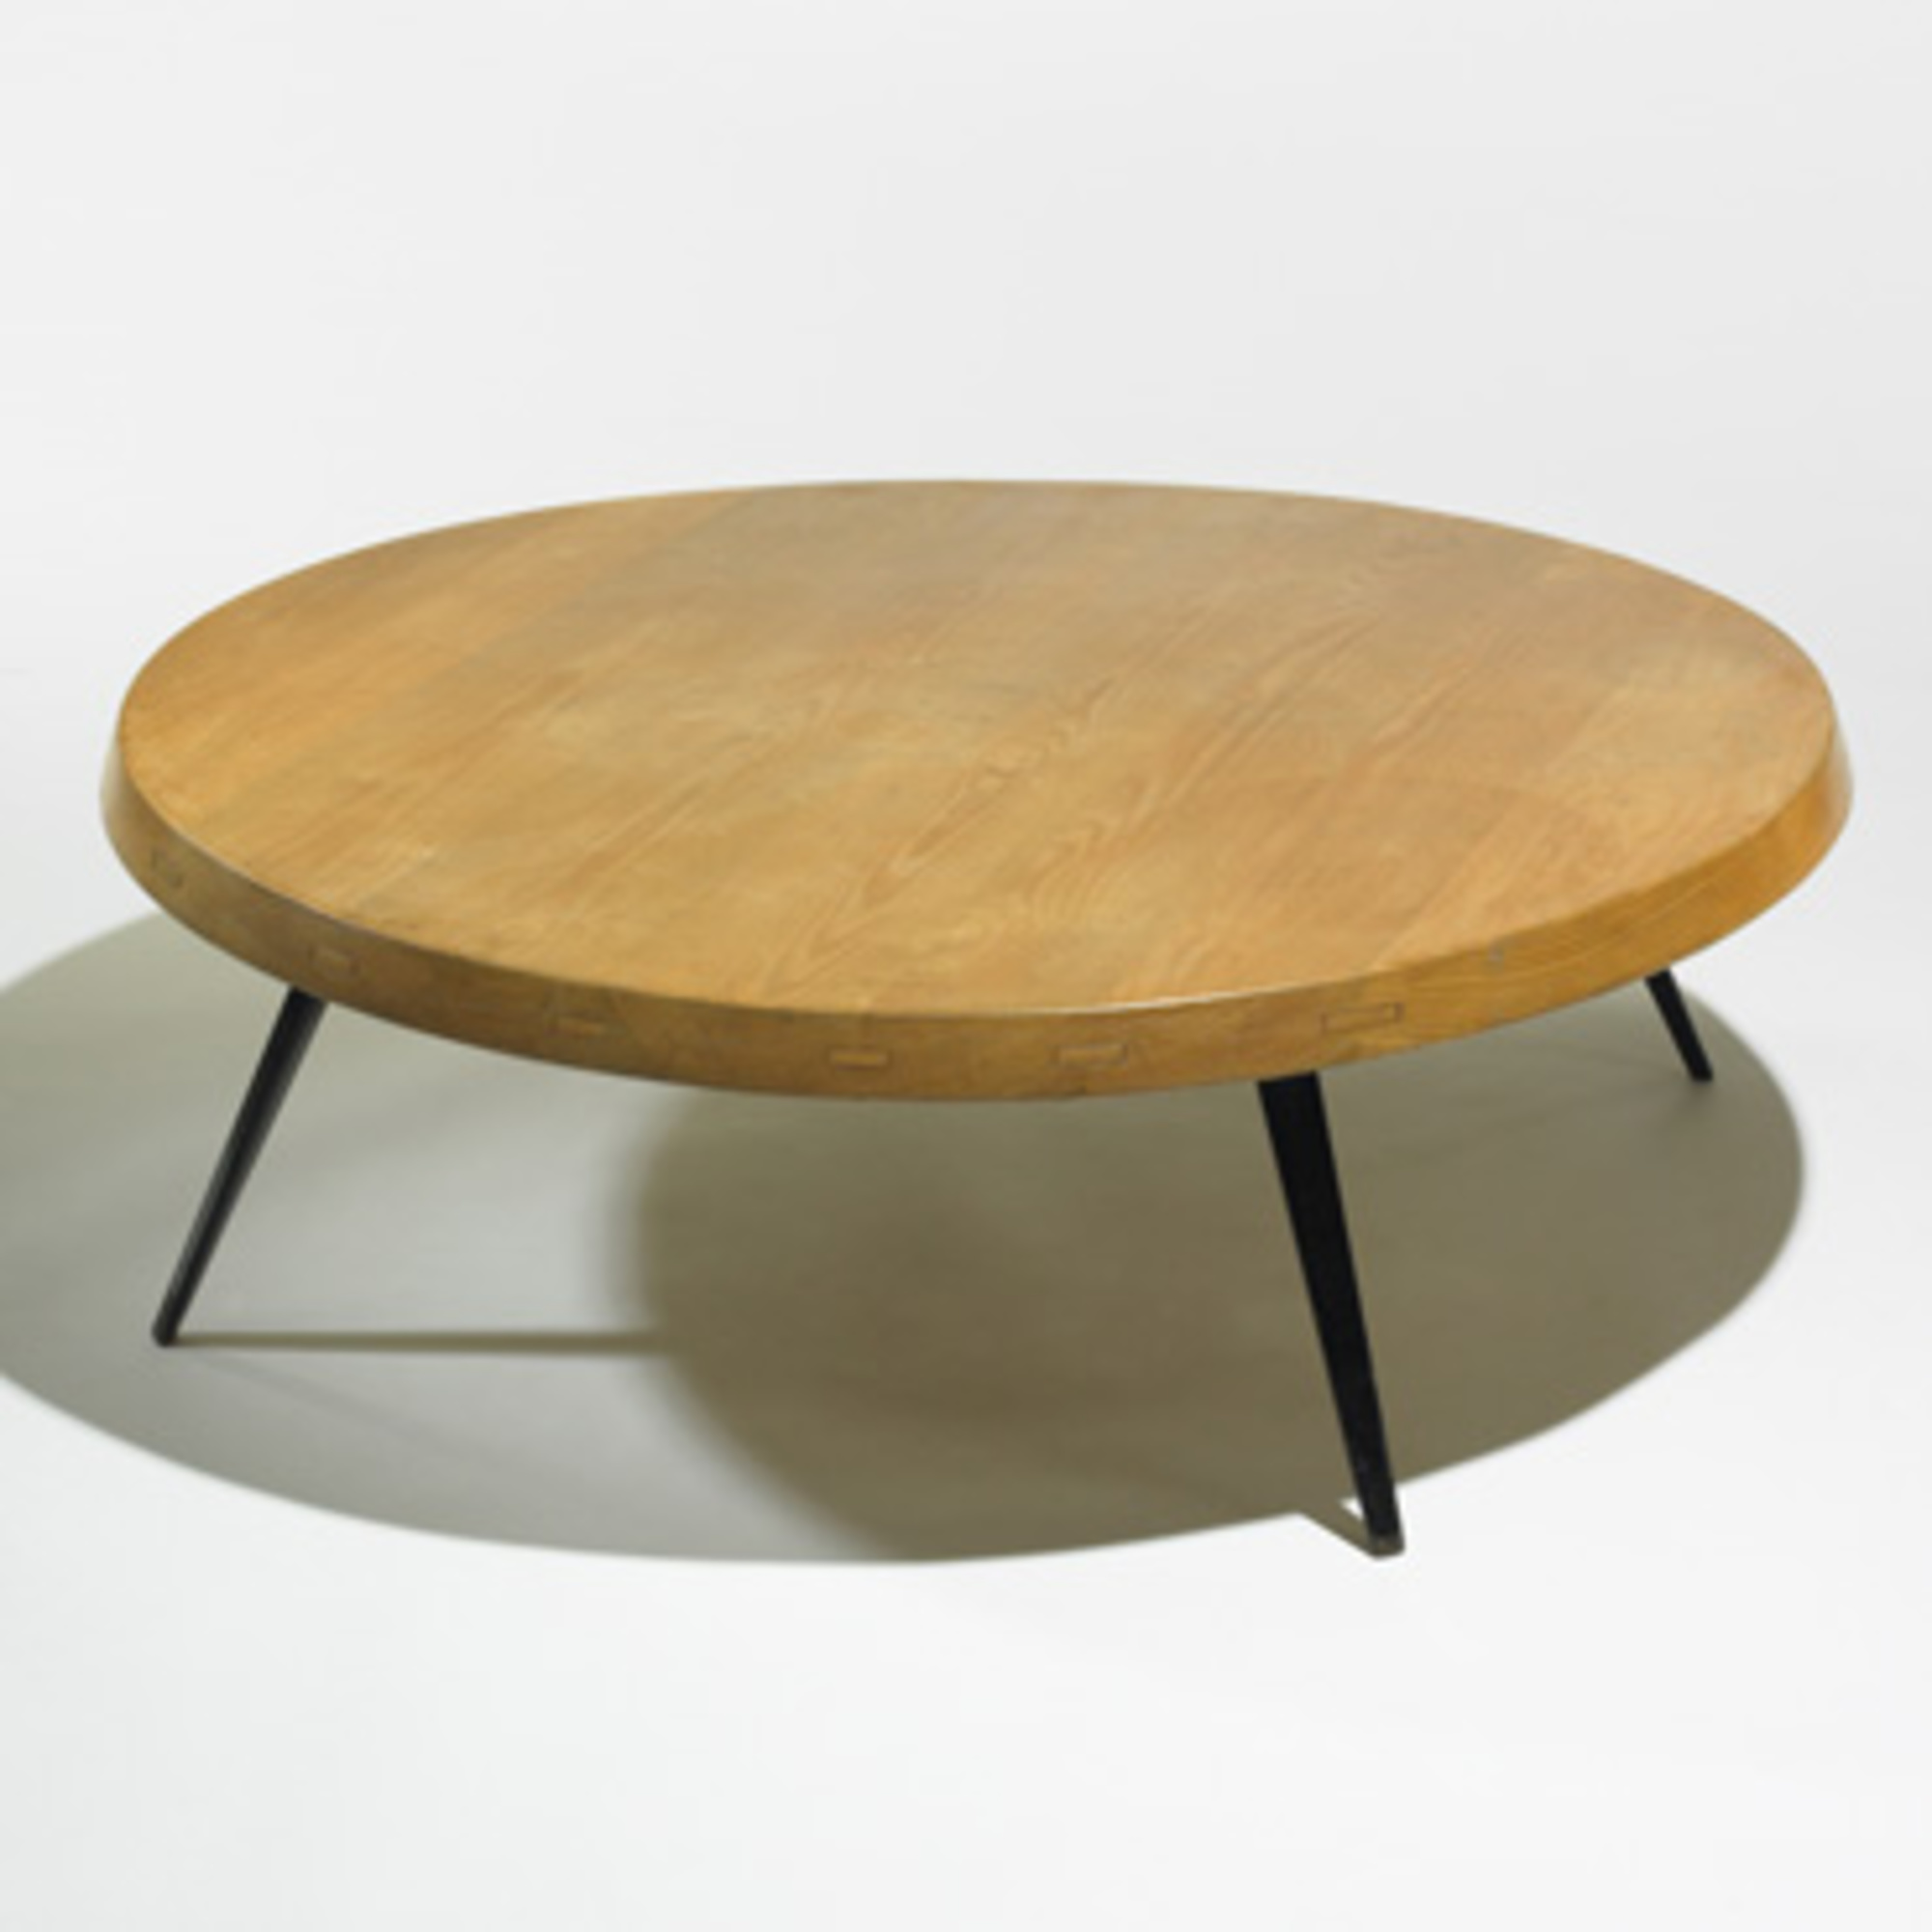 Sensational 247 Charlotte Perriand Coffee Table Important Design Ocoug Best Dining Table And Chair Ideas Images Ocougorg